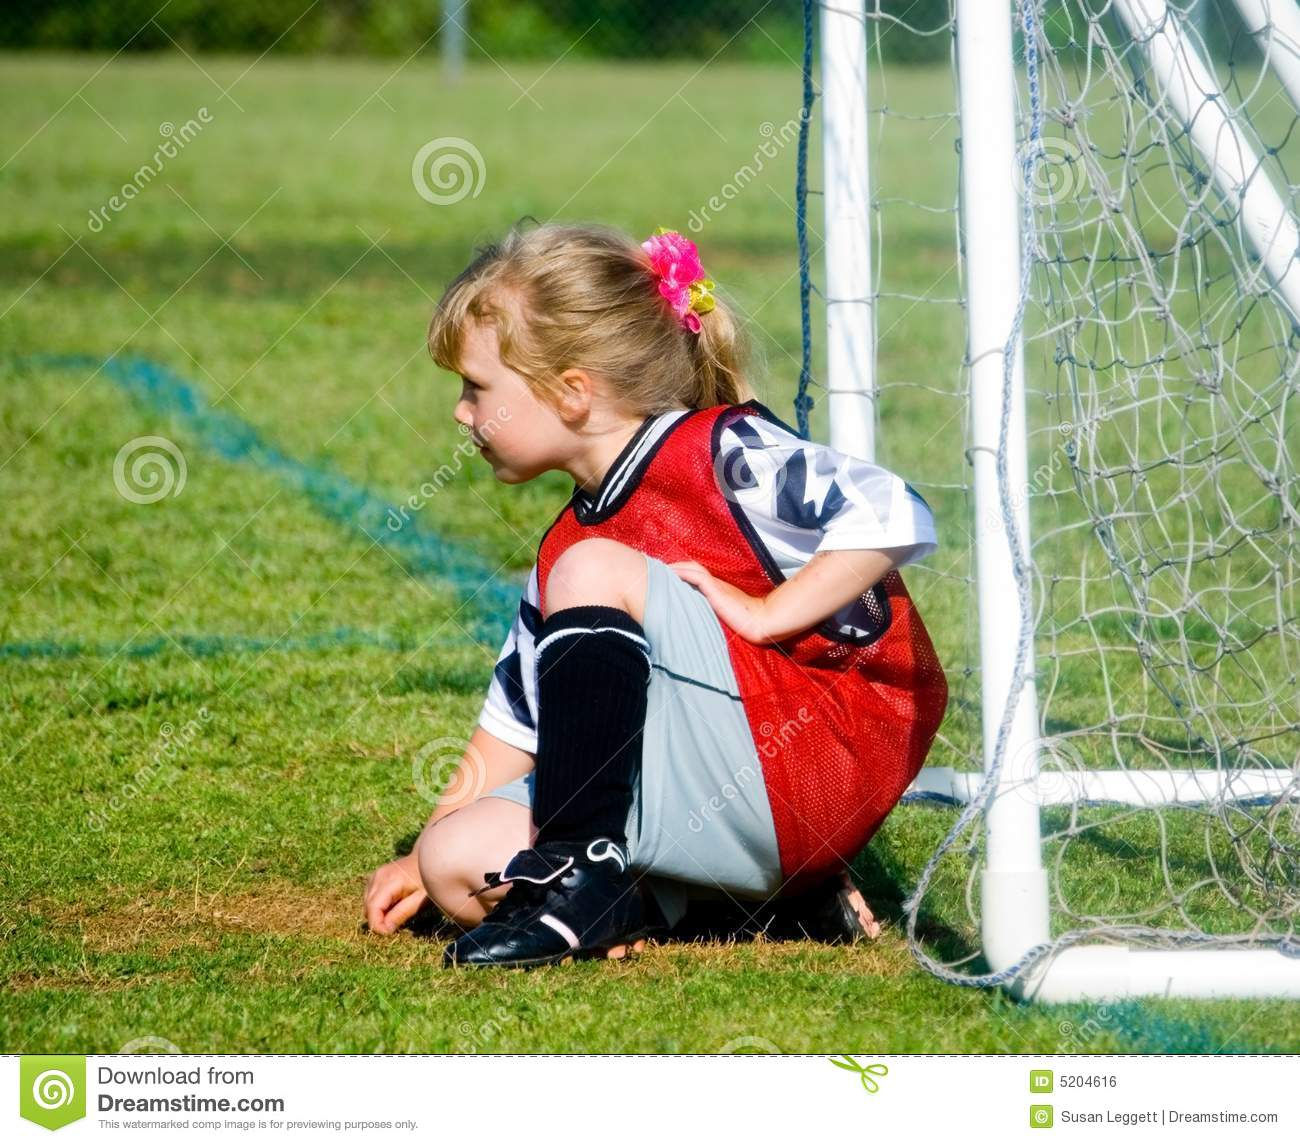 Goalie Watching and Waiting